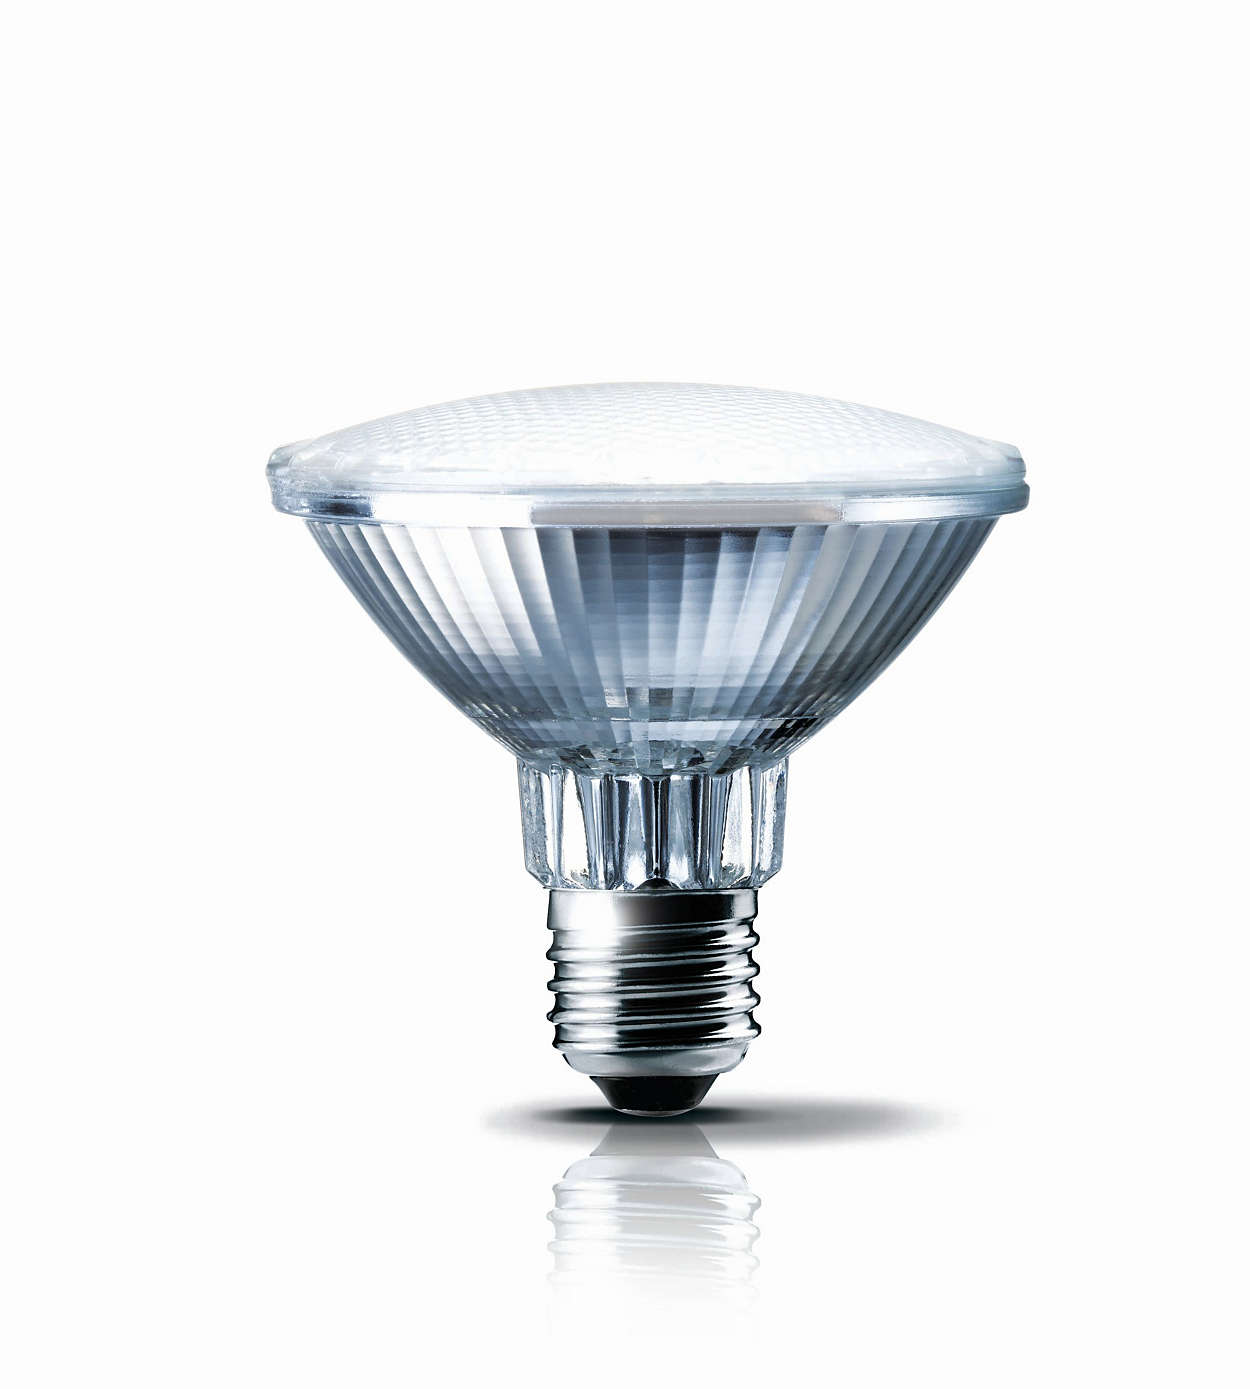 Superior halogen lighting